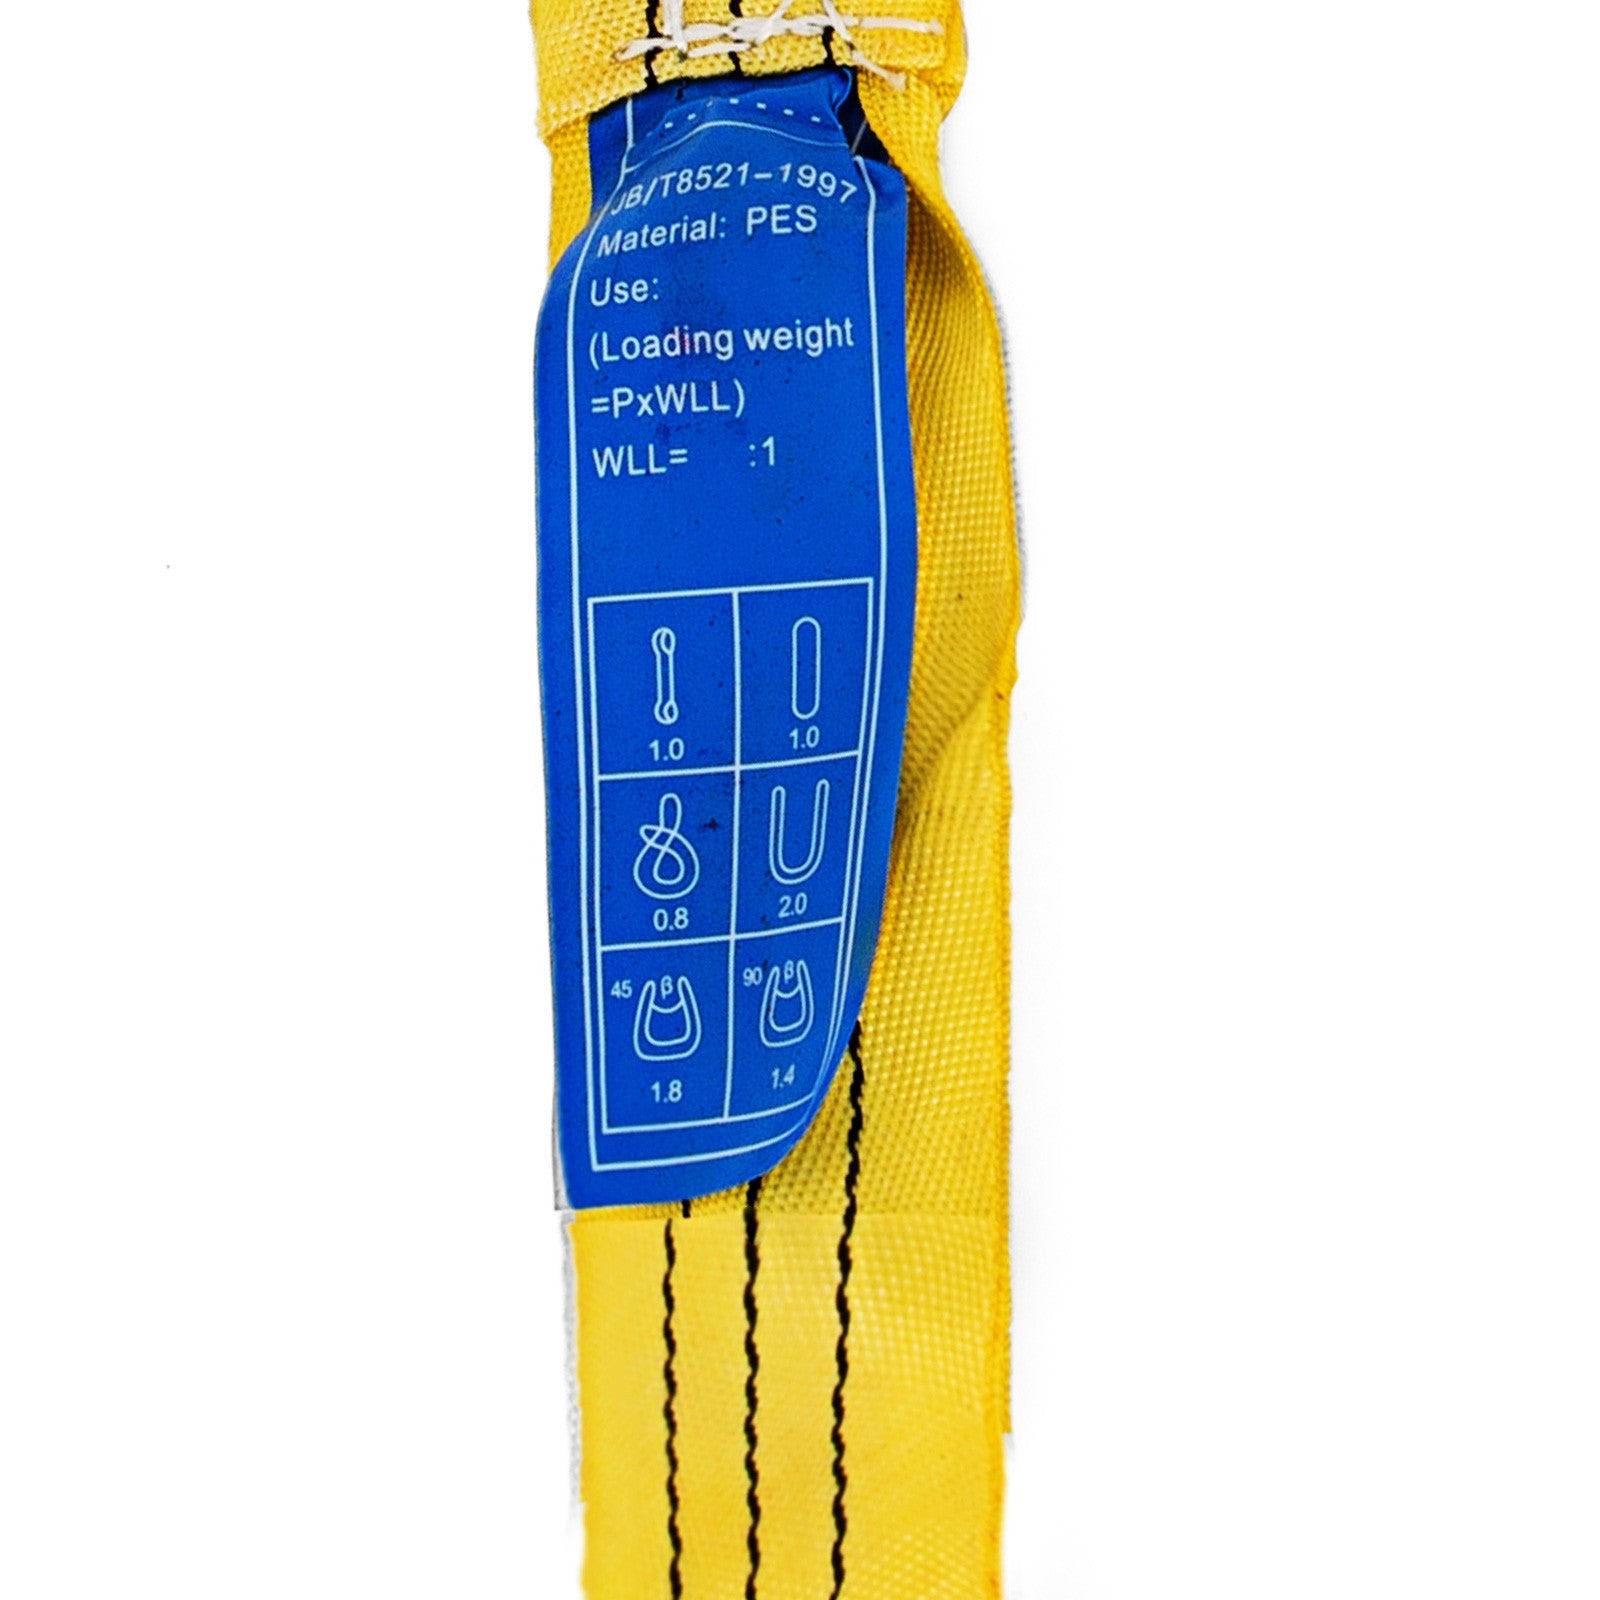 Round Lifting Sling Strap 2pcs 6ft Perimeter 6600lbs Yellow